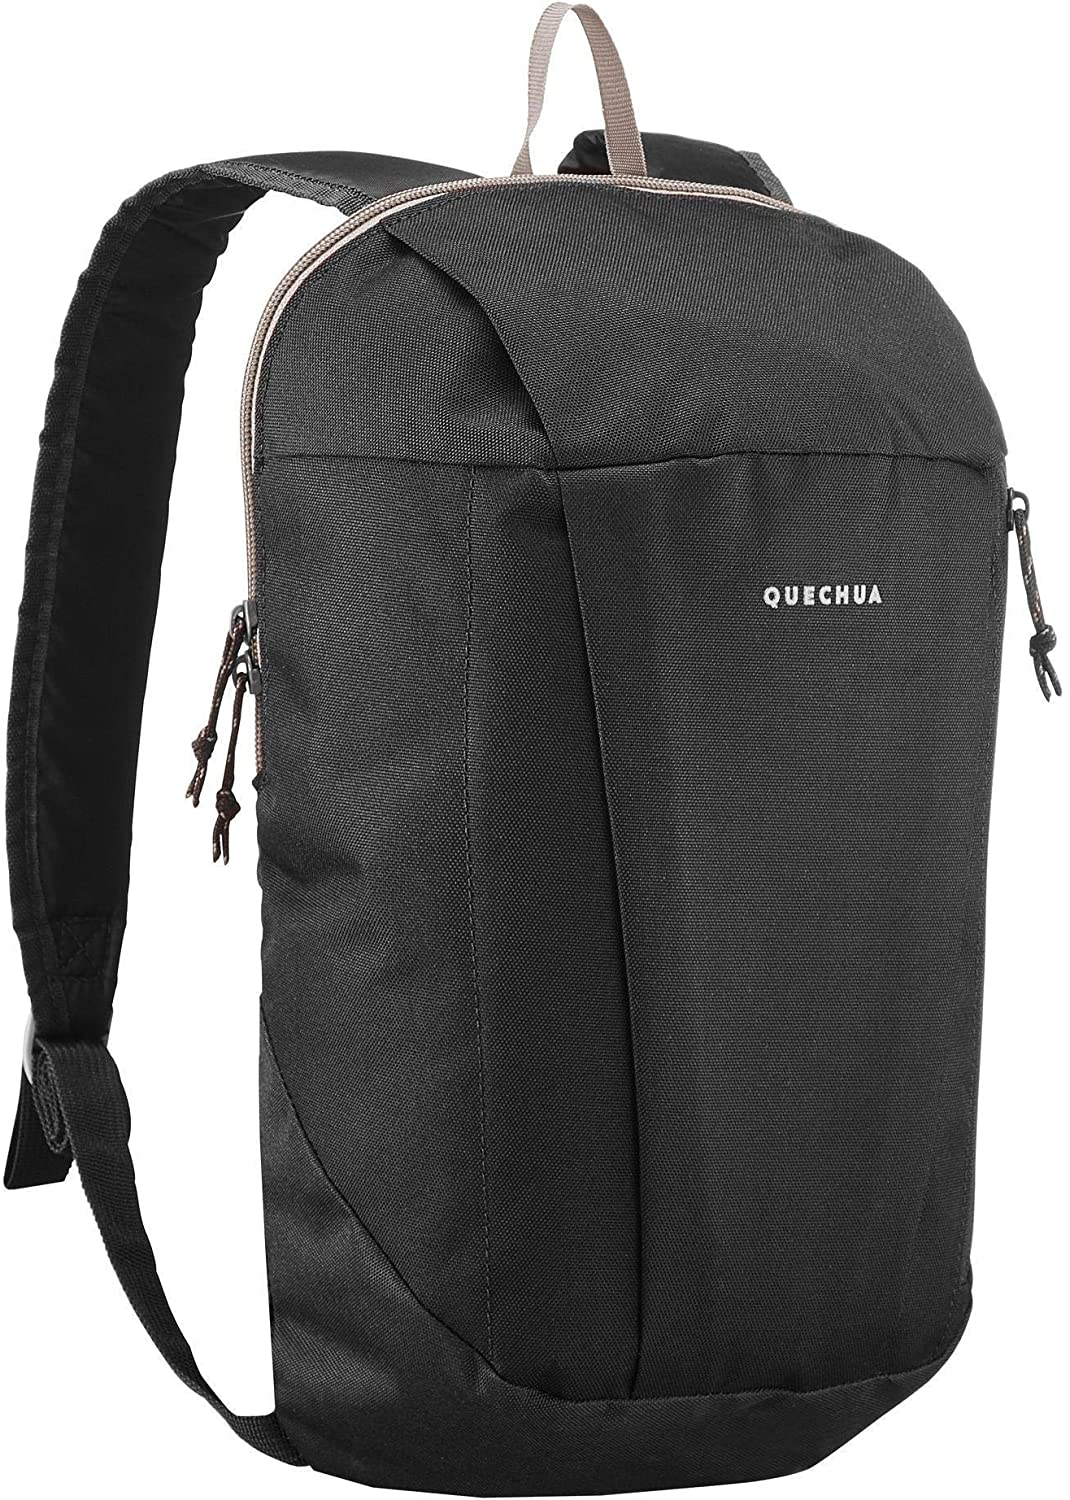 Quechua NH100, 10 Liters Multipurpose Backpack